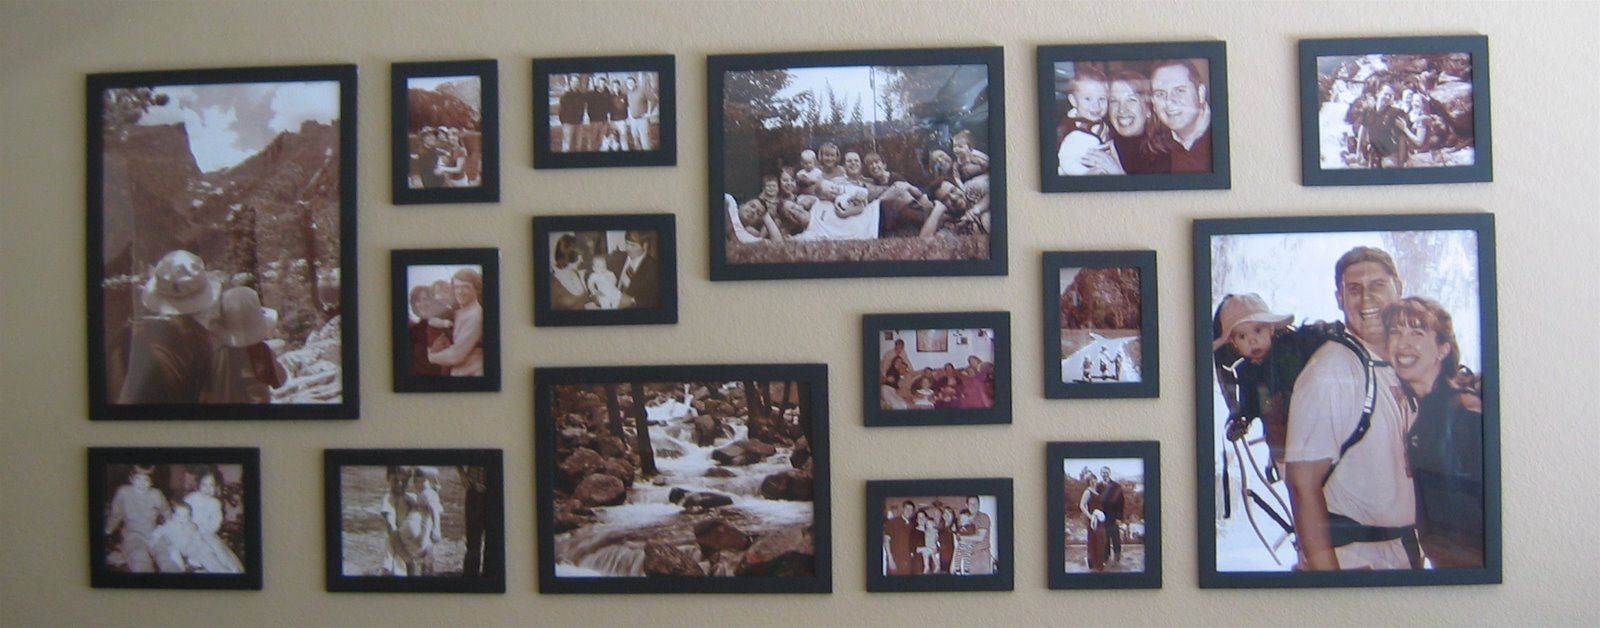 My next project: Canvas Wall. I will use a similar plan as this with ...